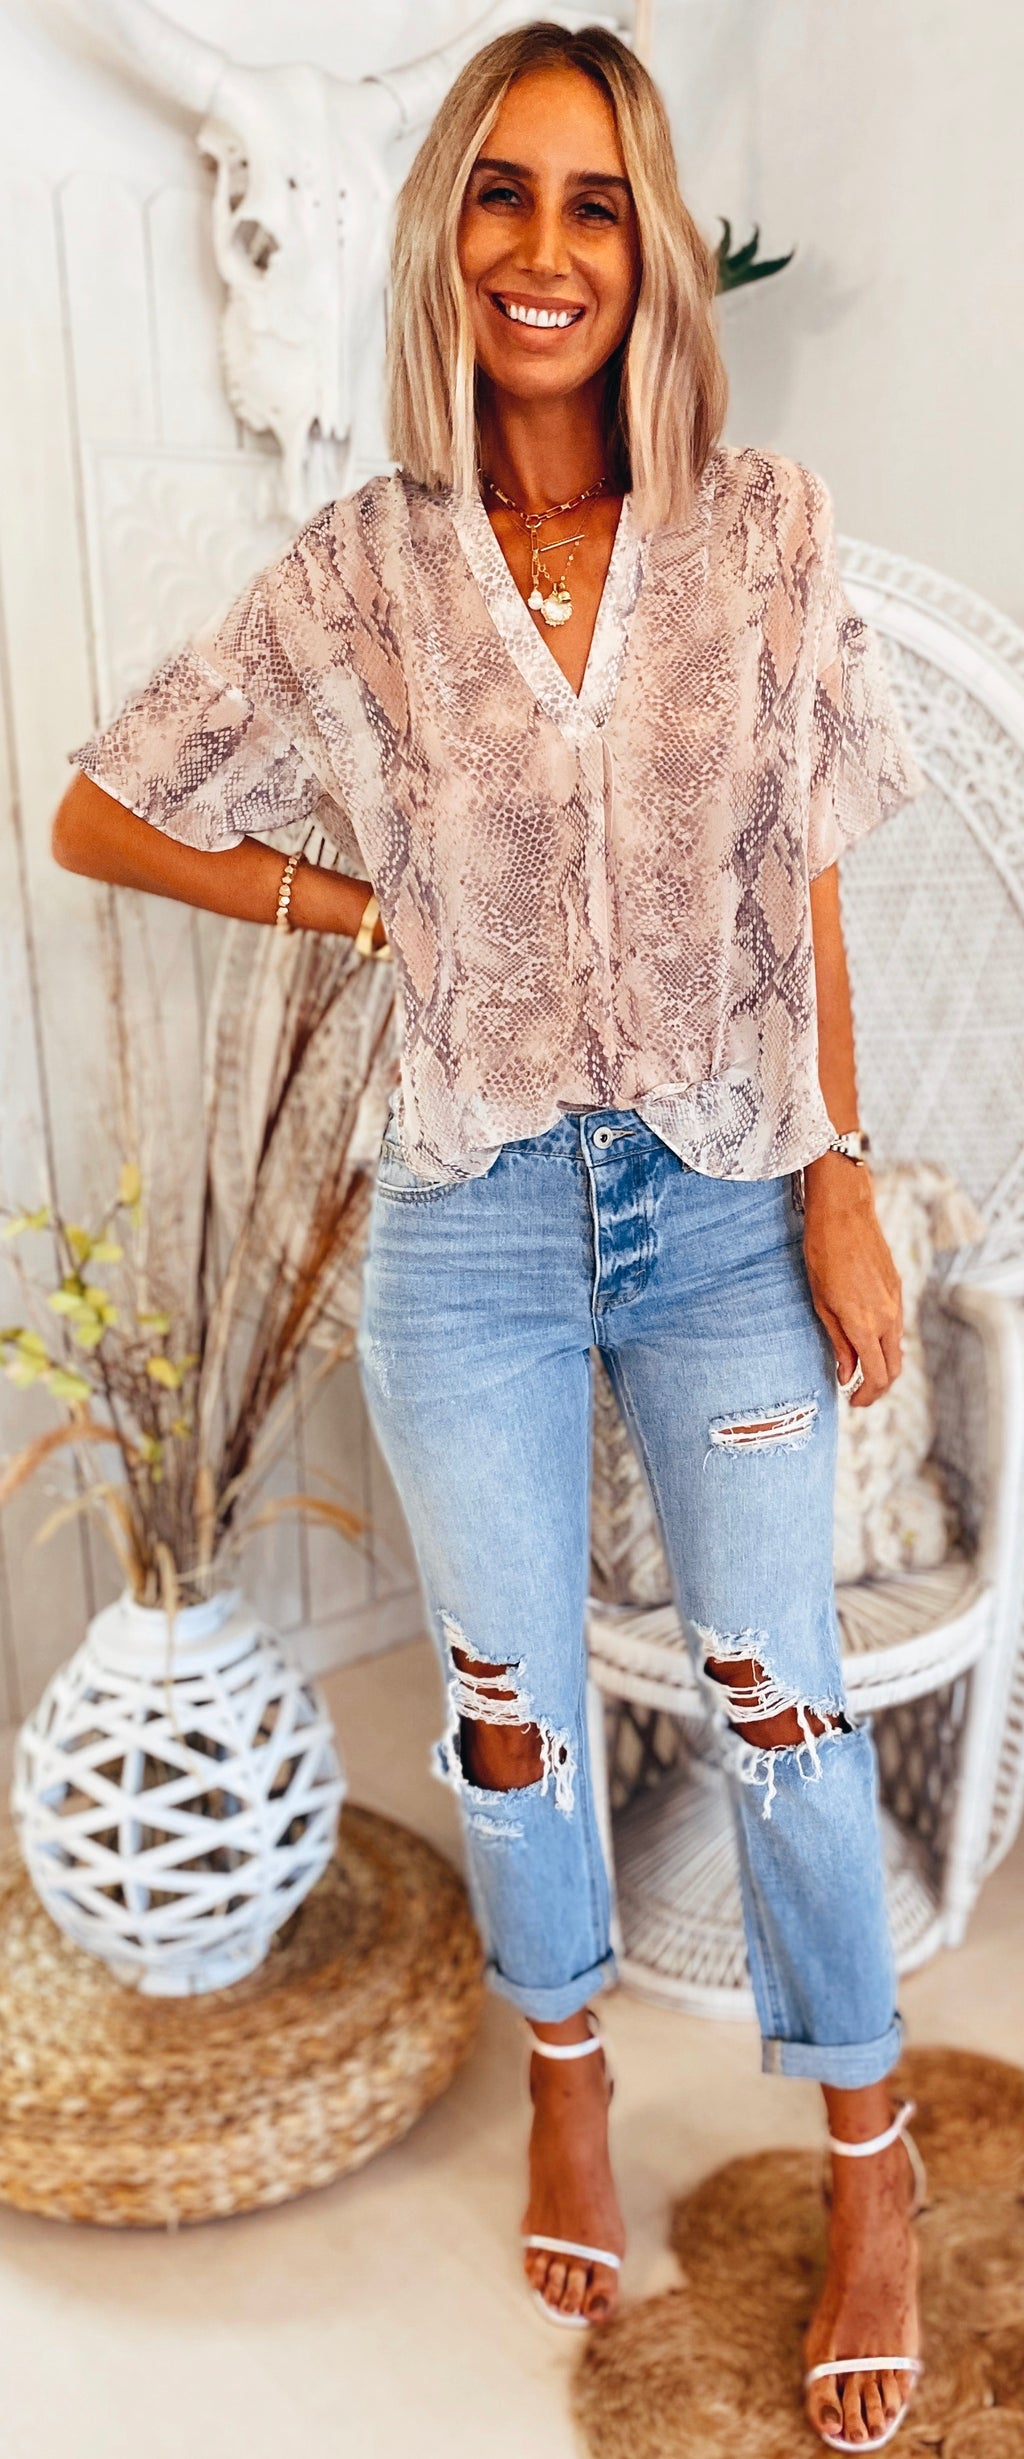 The Blushing Desert Top